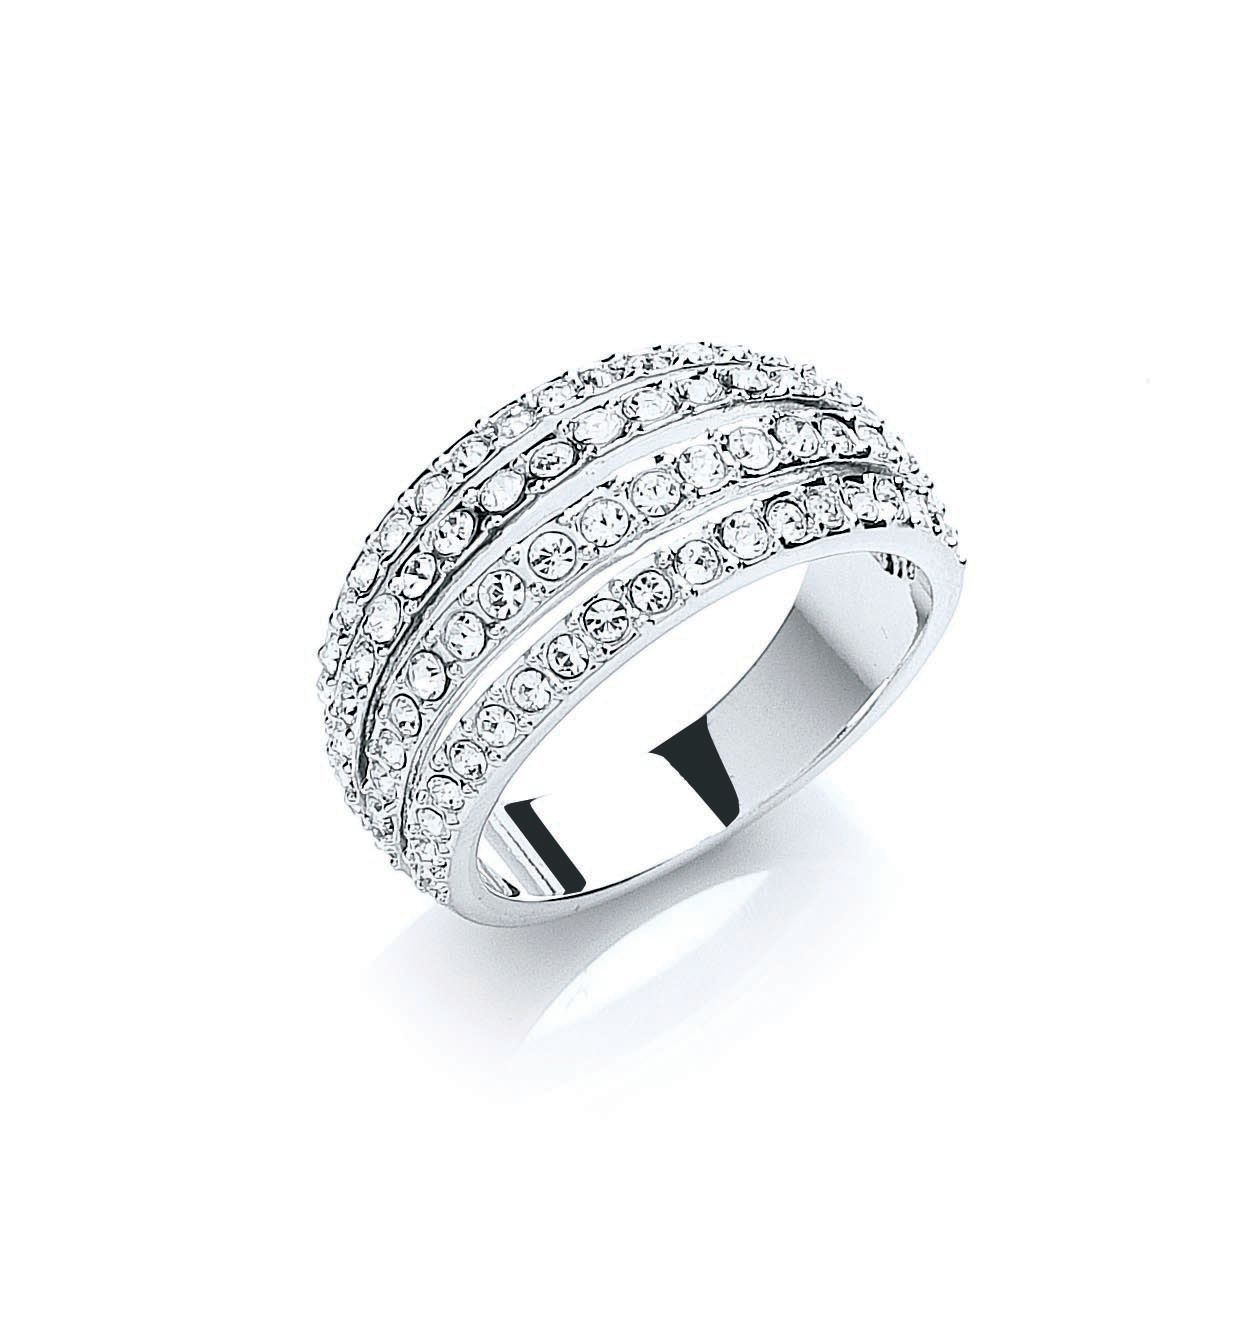 Rhodium plate pave strands ring